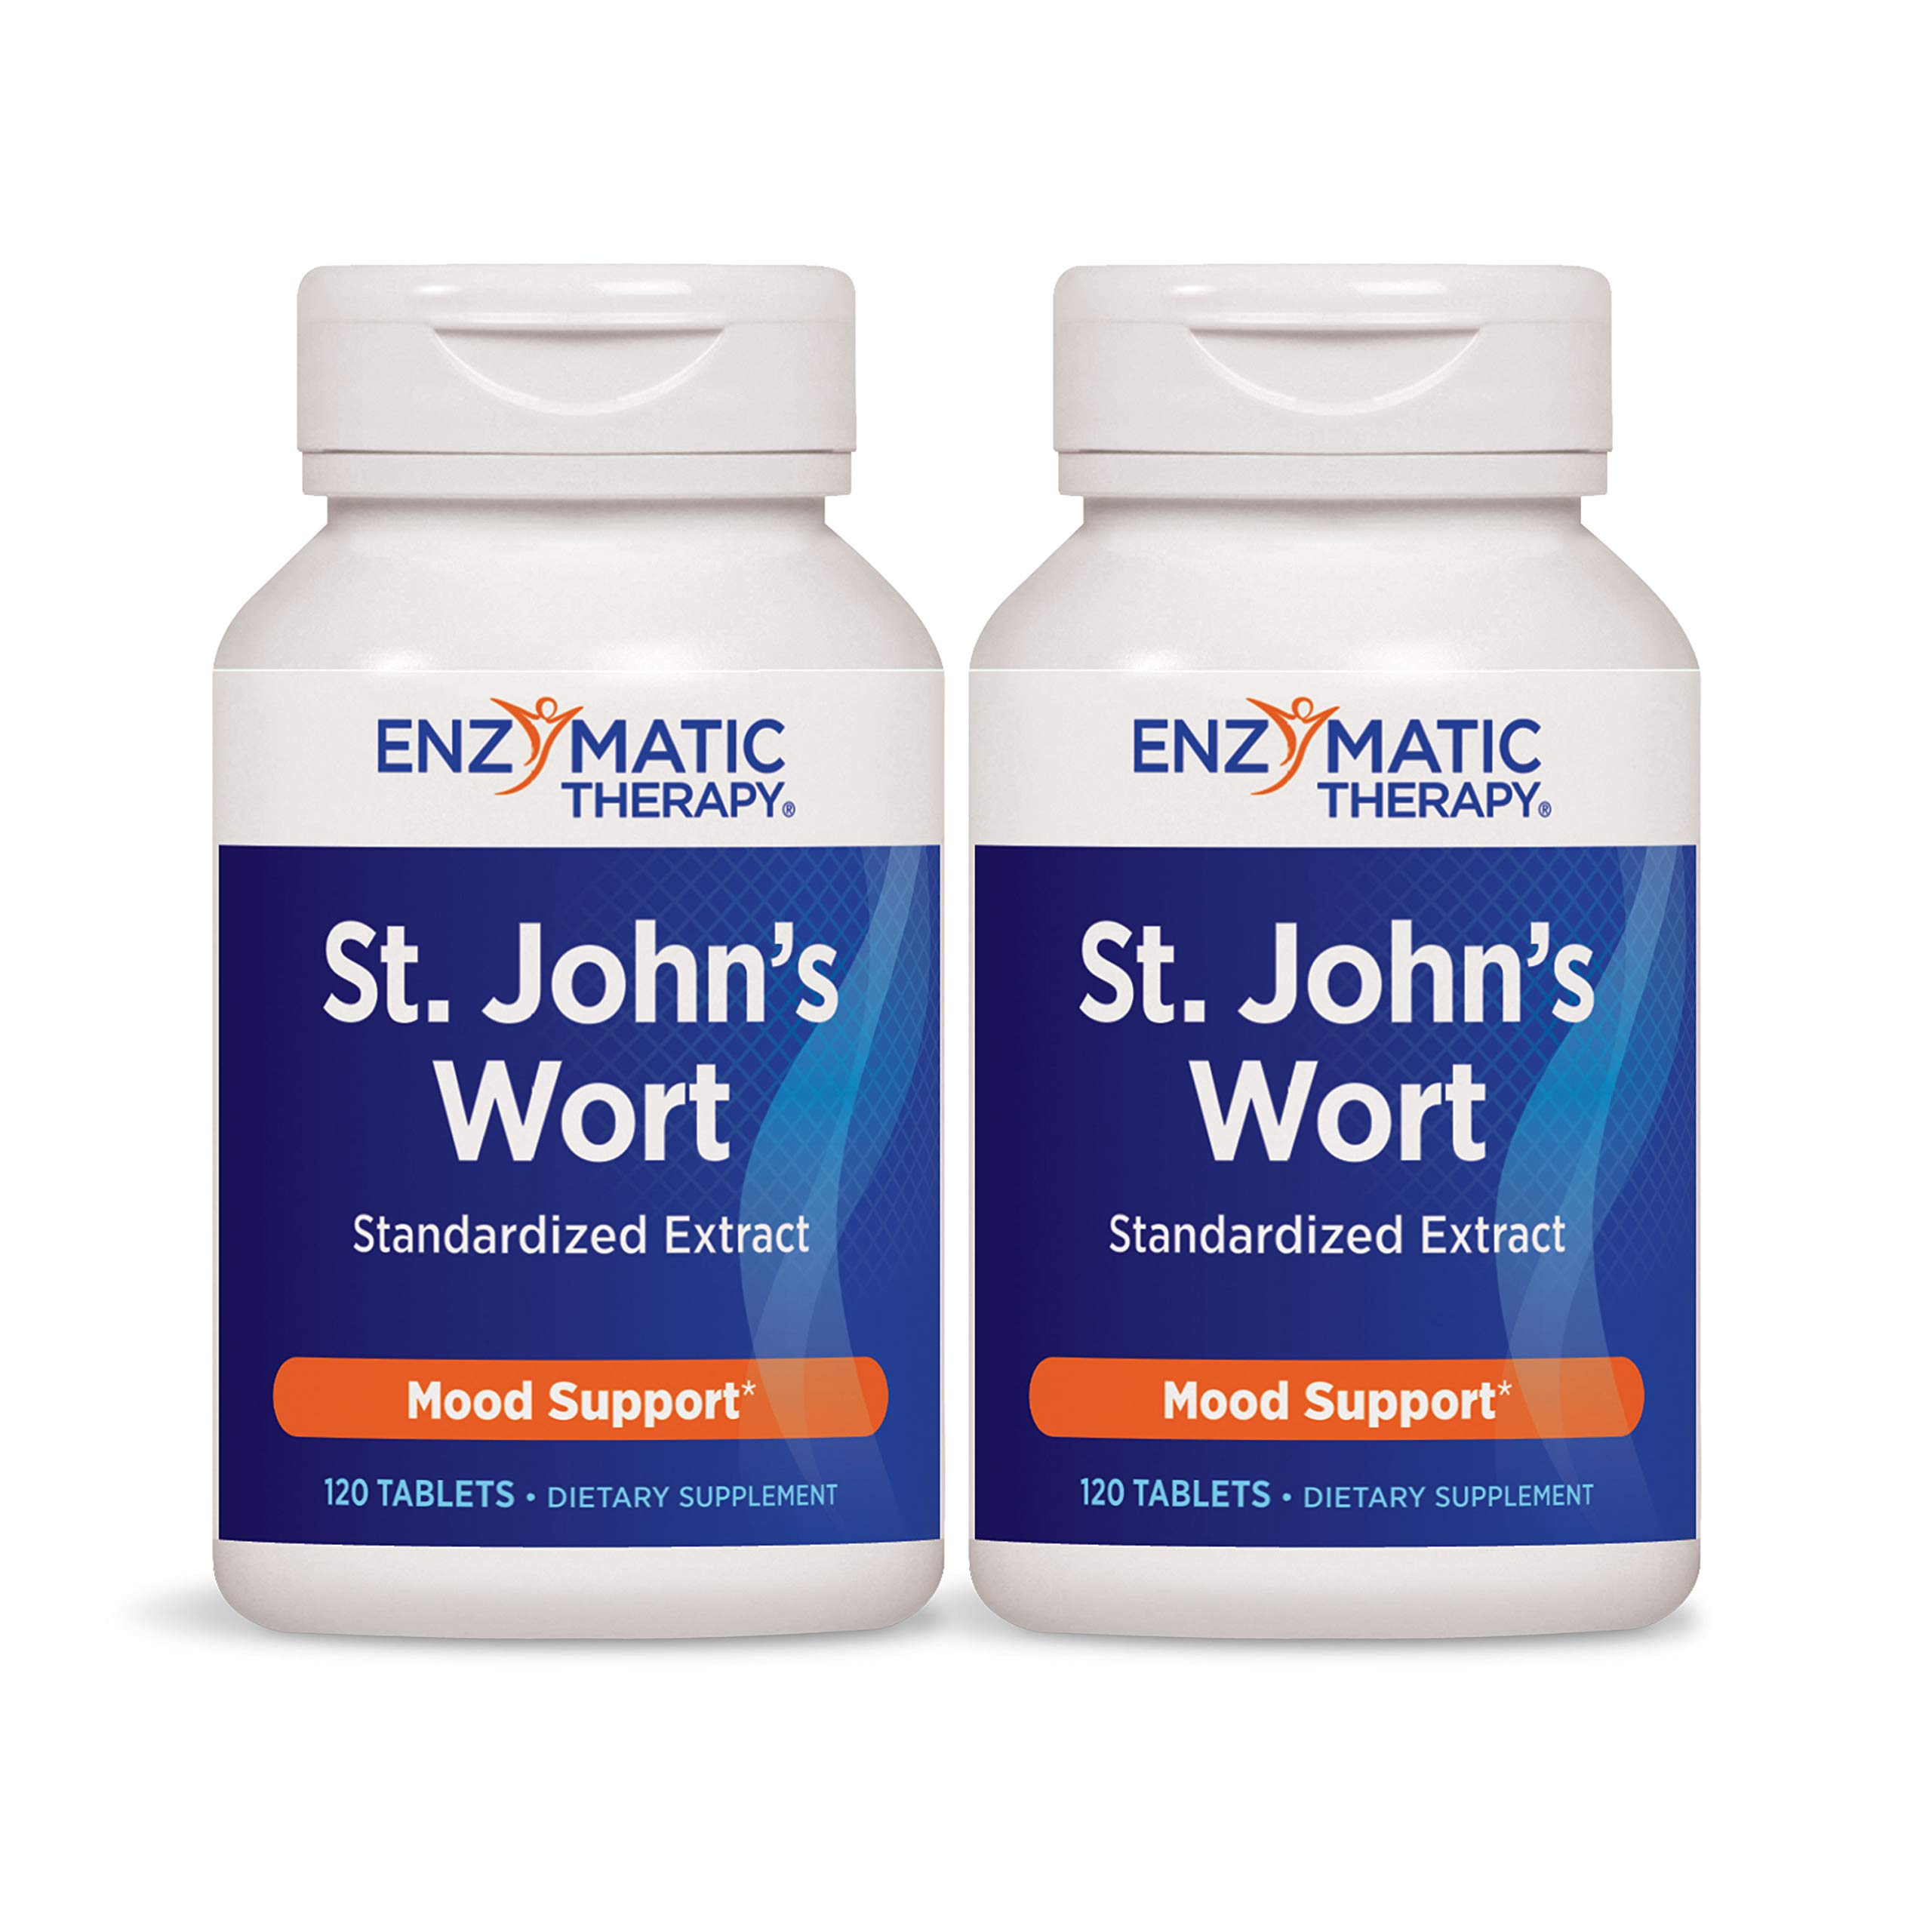 Enzymatic Therapy St. John's Wort Standardized Extract Mood Support, 120 Count (Pack of 2)